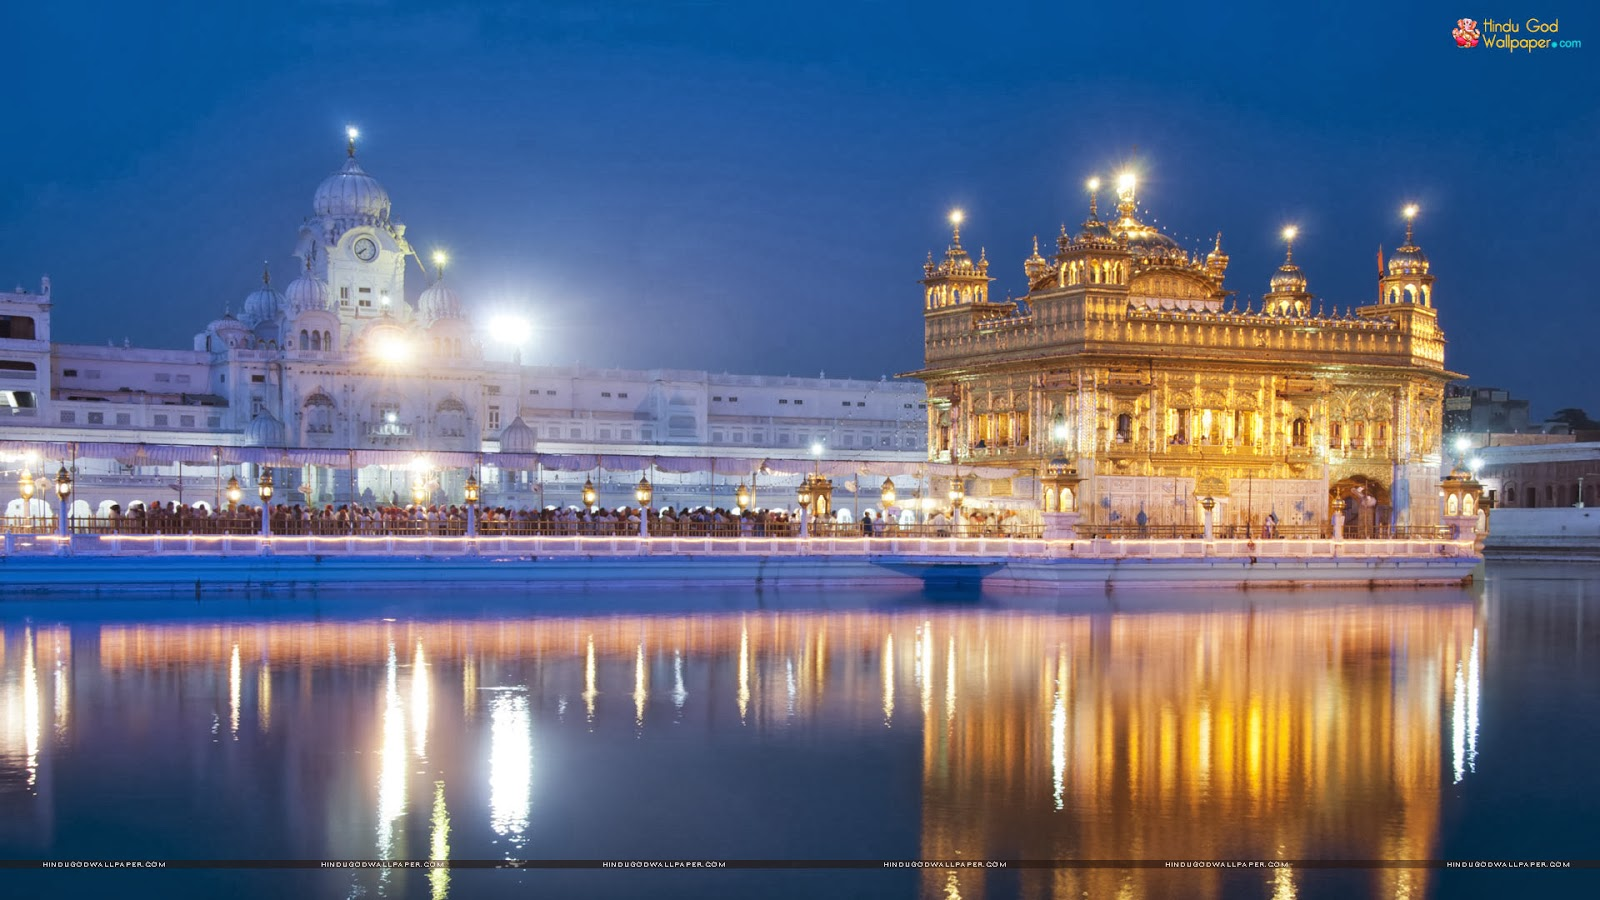 Golden temple hindu god wallpapers download - Golden temple images hd download ...